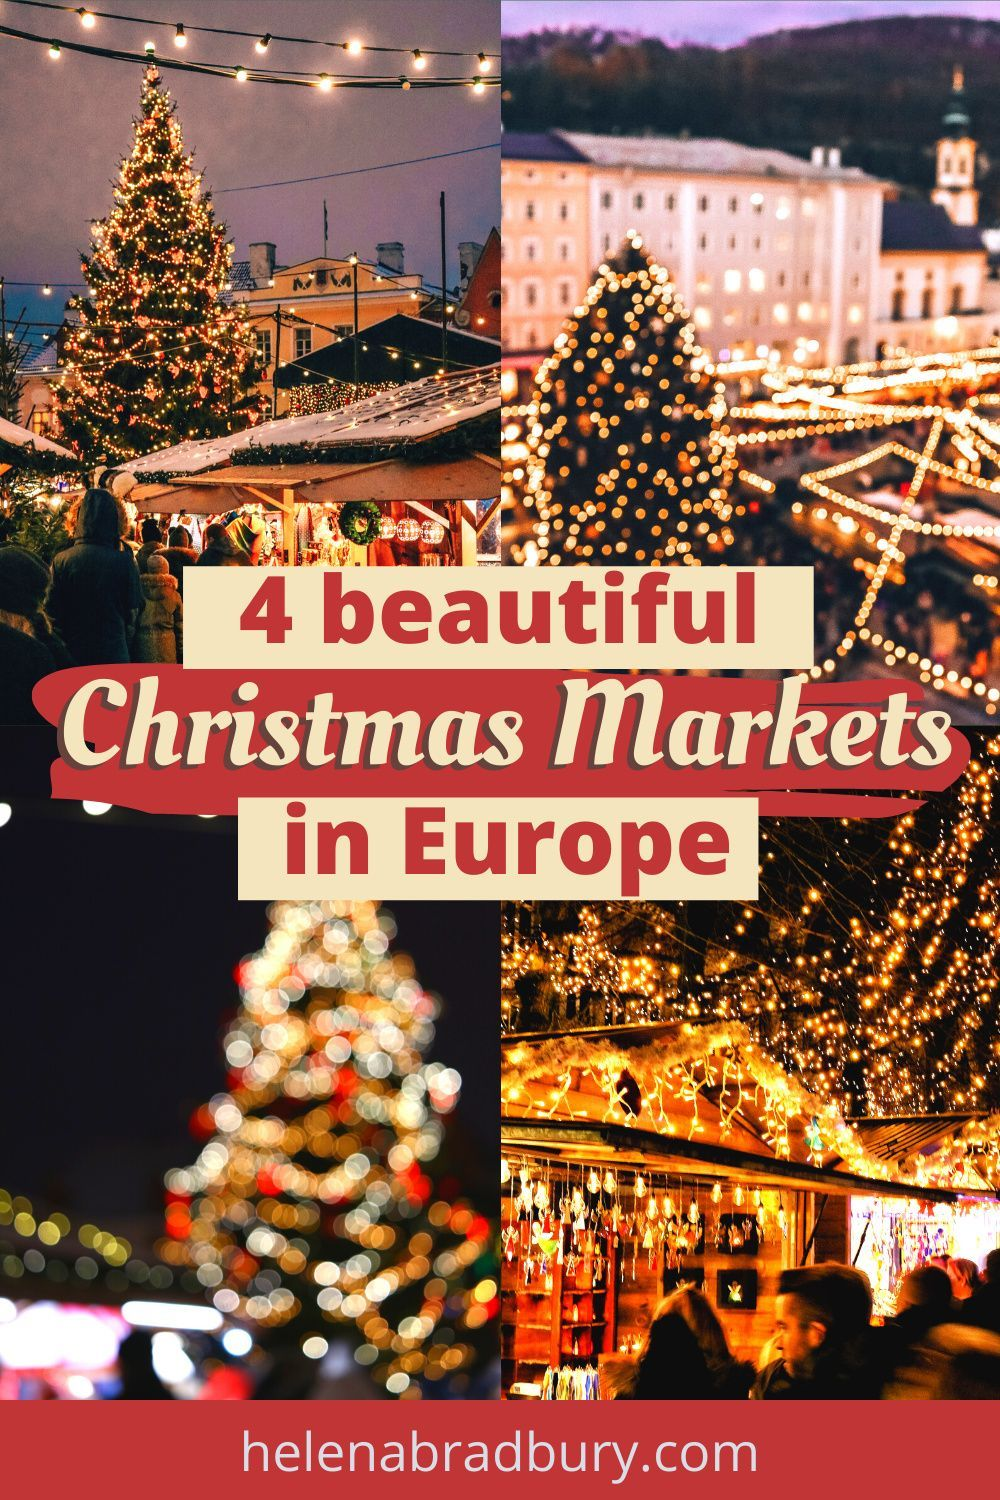 If you're looking to avoid the busiest Christmas markets in France and Germany this year, consider visiting these beautiful Christmas Markets in Europe for the perfect festive getaway | christmas market aesthetic | Christmas Market ideas | best christmas markets europe | christmas markets europe december | belgium | european christmas markets | european christmas markets cities | bruges christmas market | tallinn christmas market | salzburg christmas market | Austria | Hallstatt at Christmas